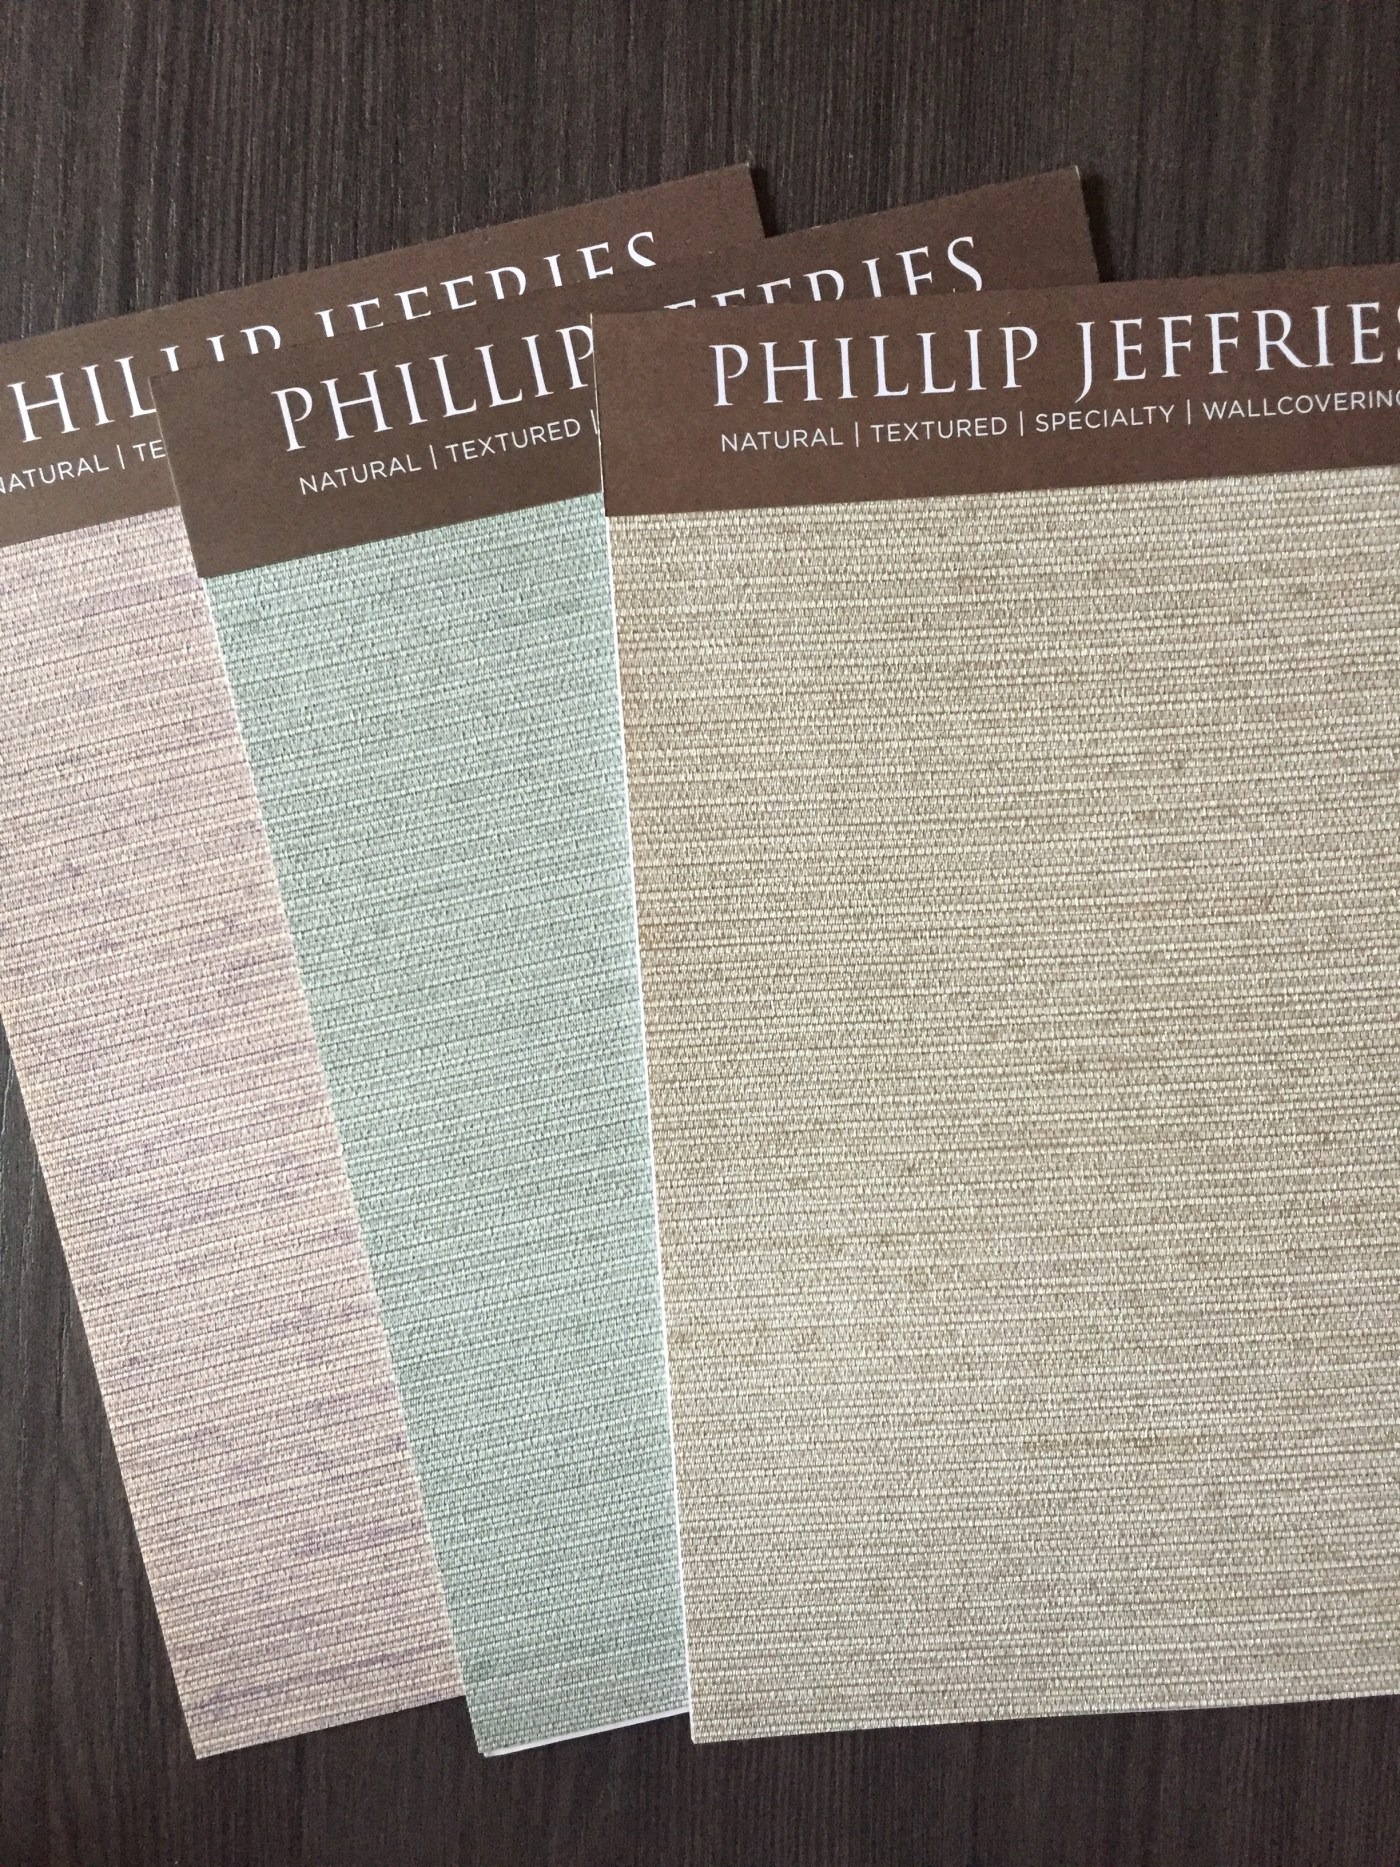 Friday Family-Friendly Find: Phillip Jeffries Vinyl Tailored Linens   Interiors for Families